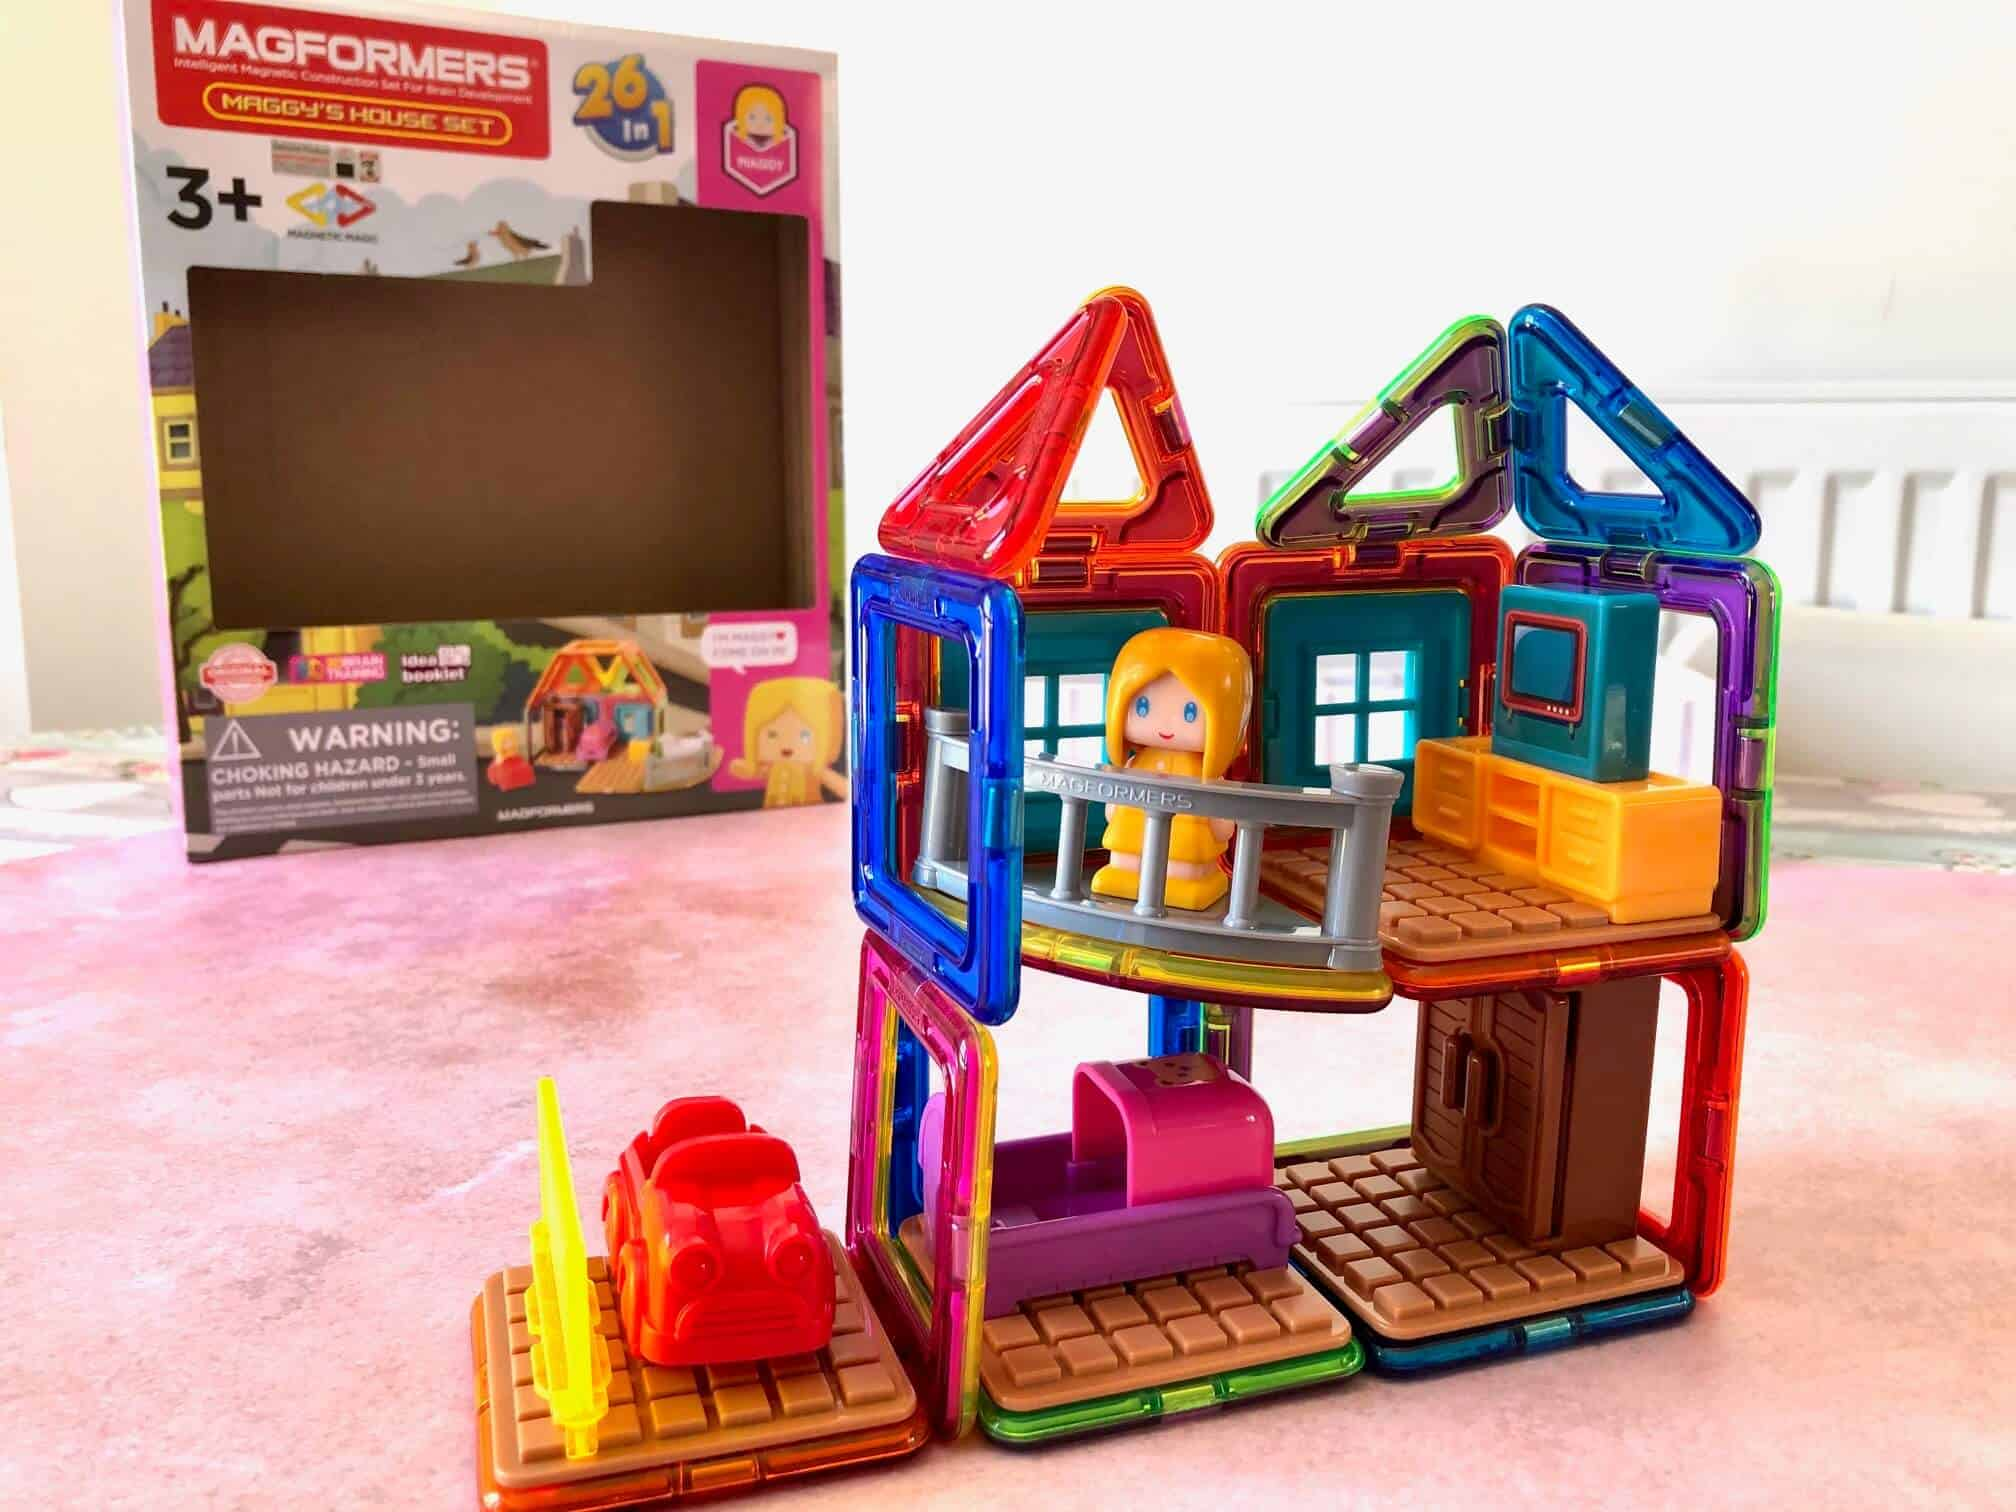 Building with Magformers Playsets